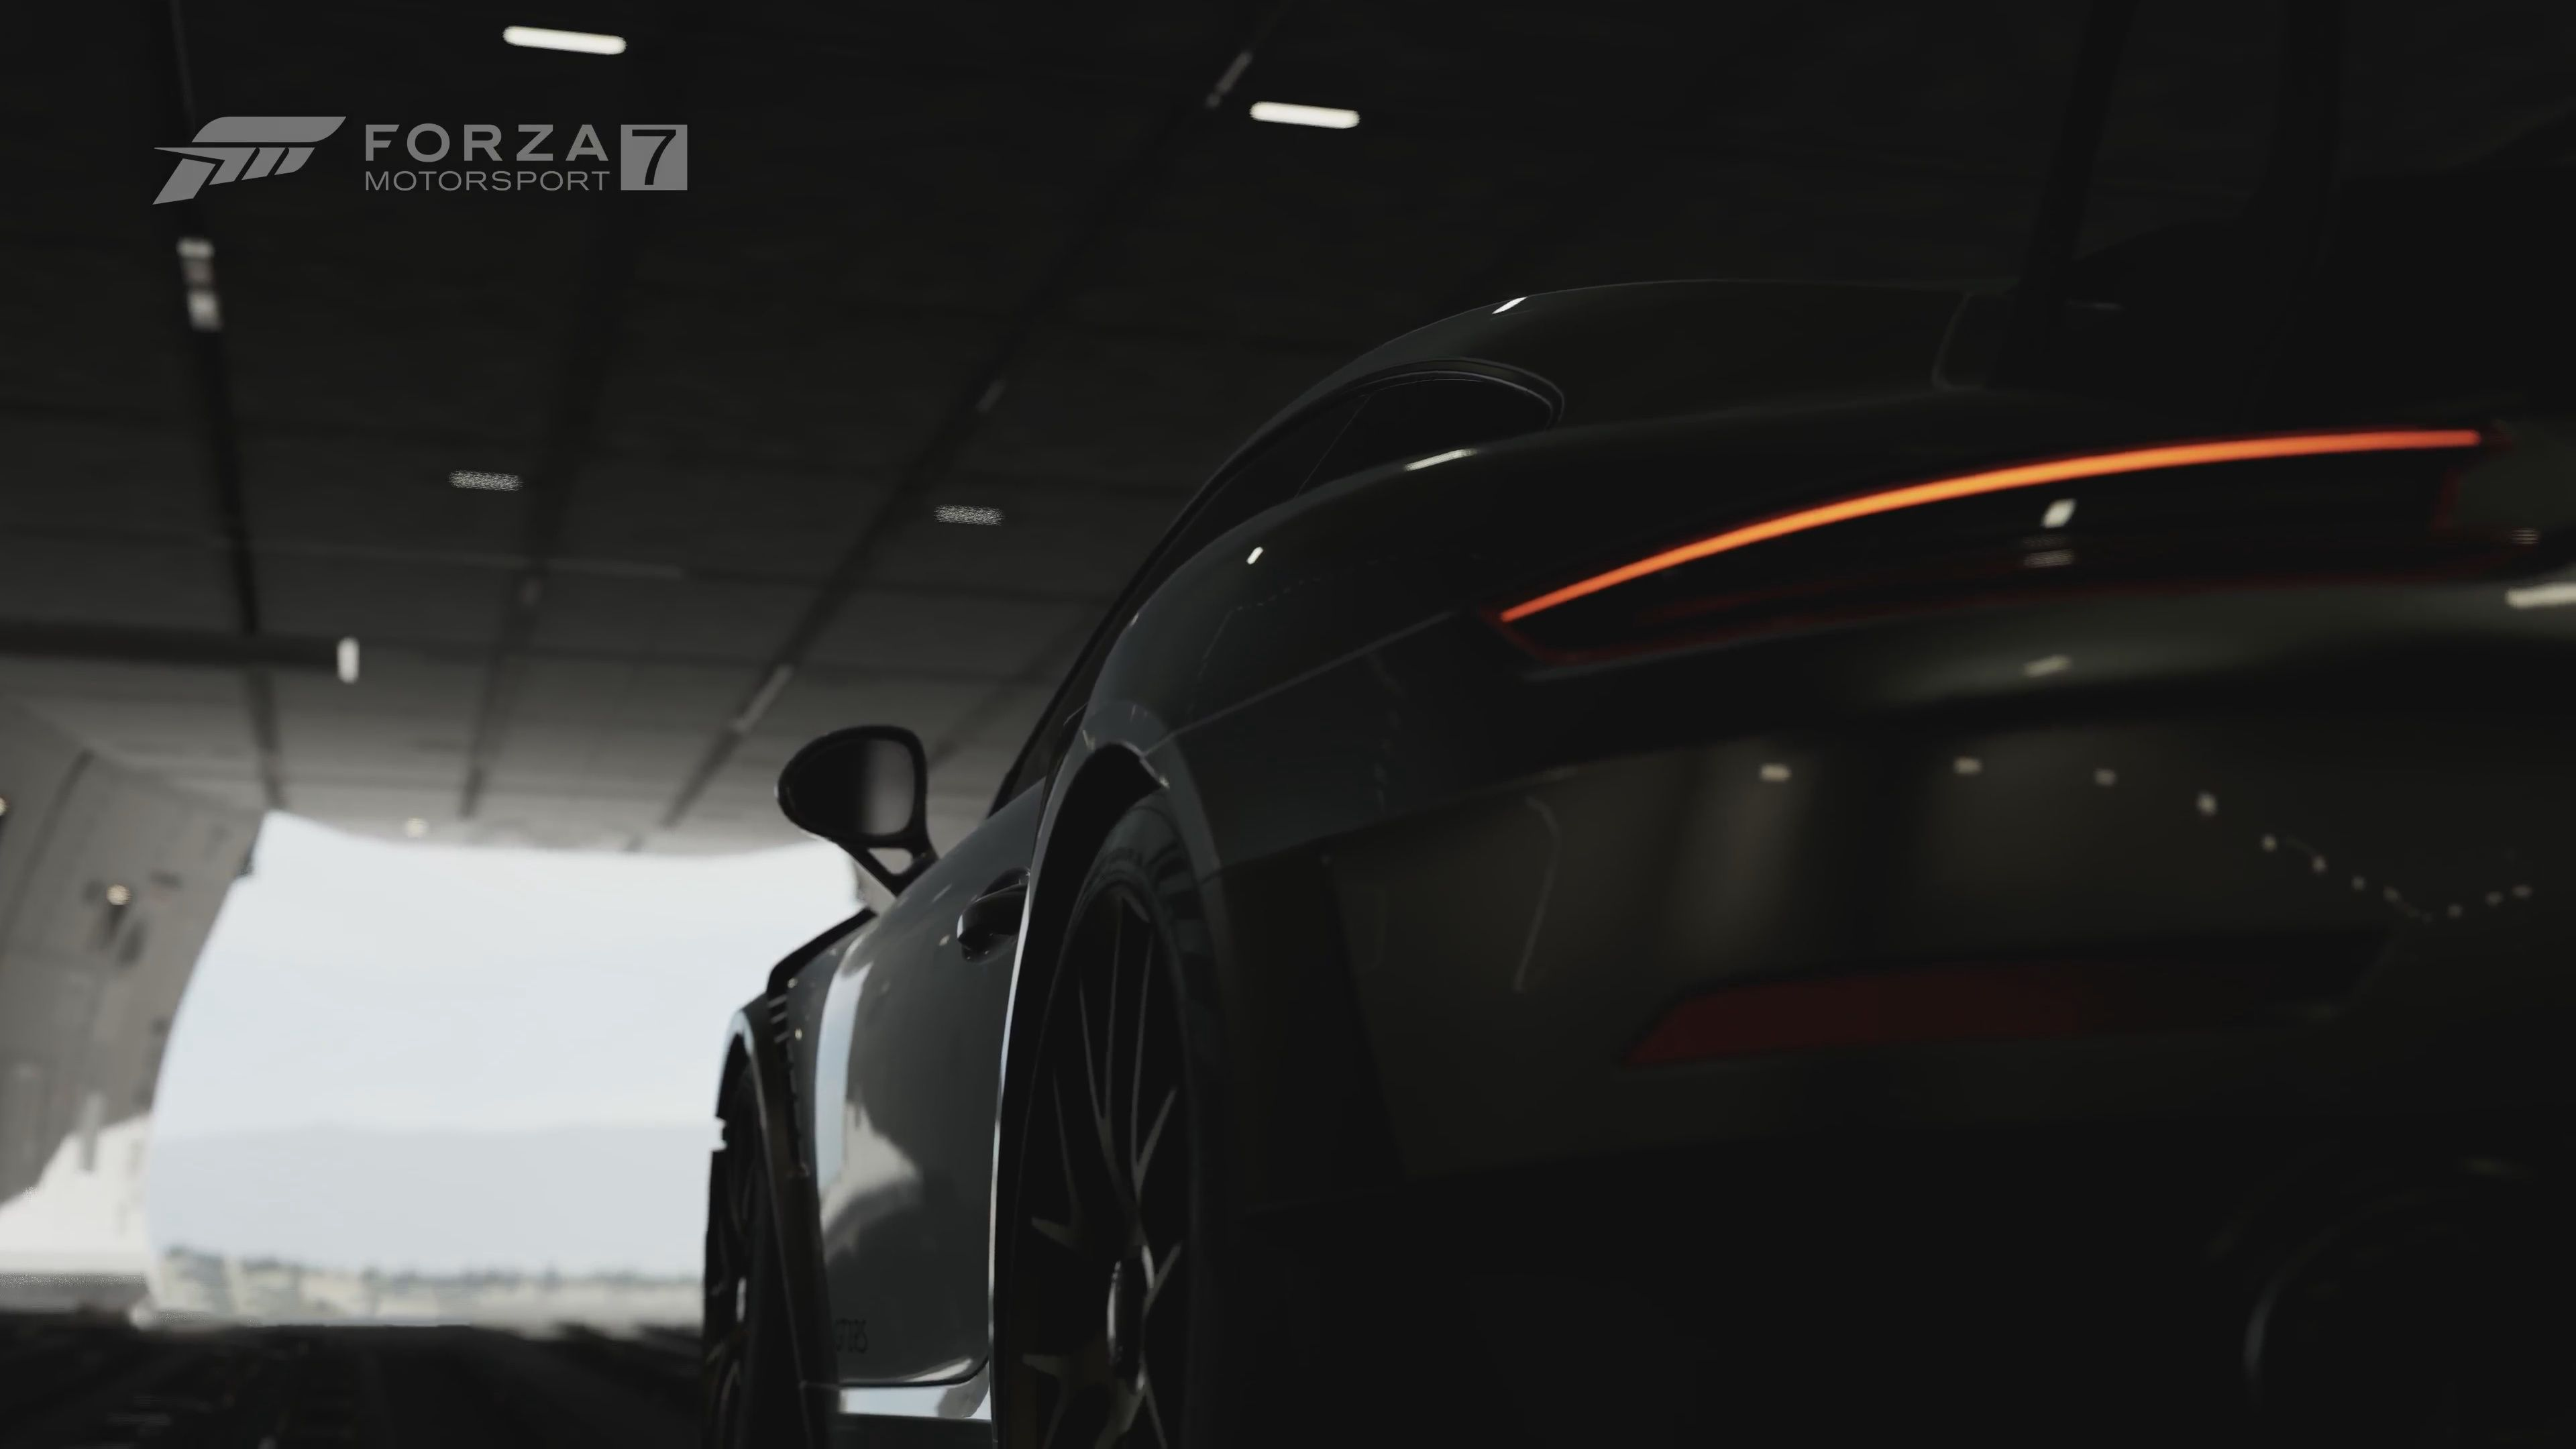 Forza Motorsport 7 Desktop